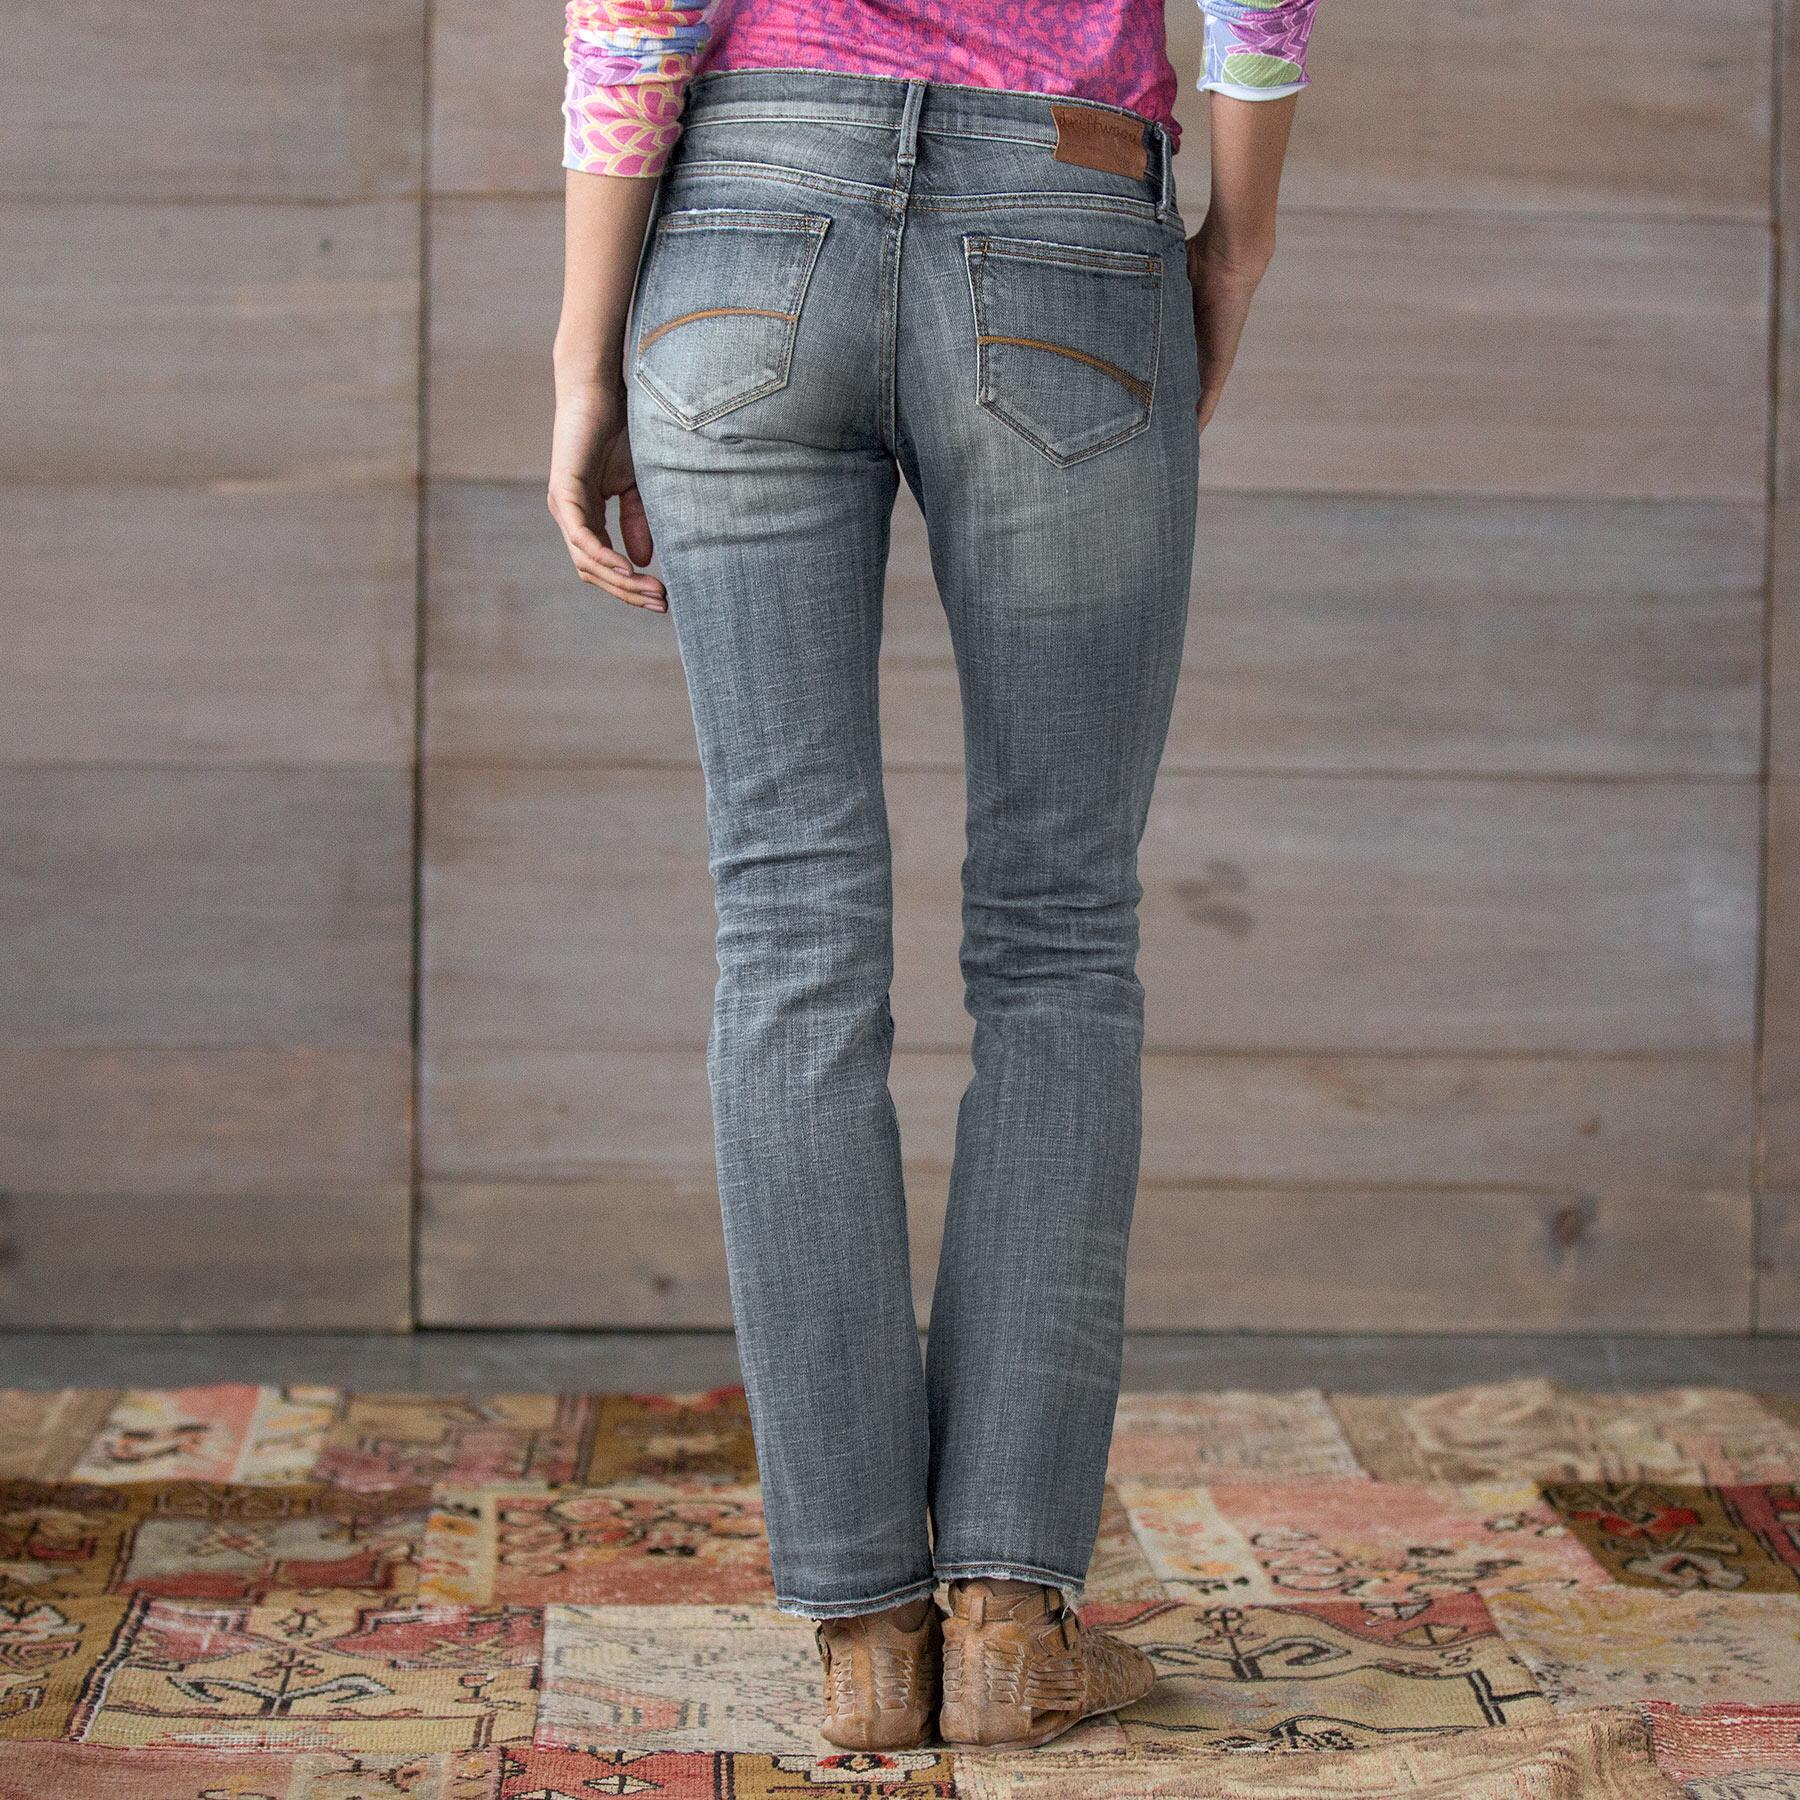 AUDREY CITADEL JEANS BY DRIFTWOOD: View 2